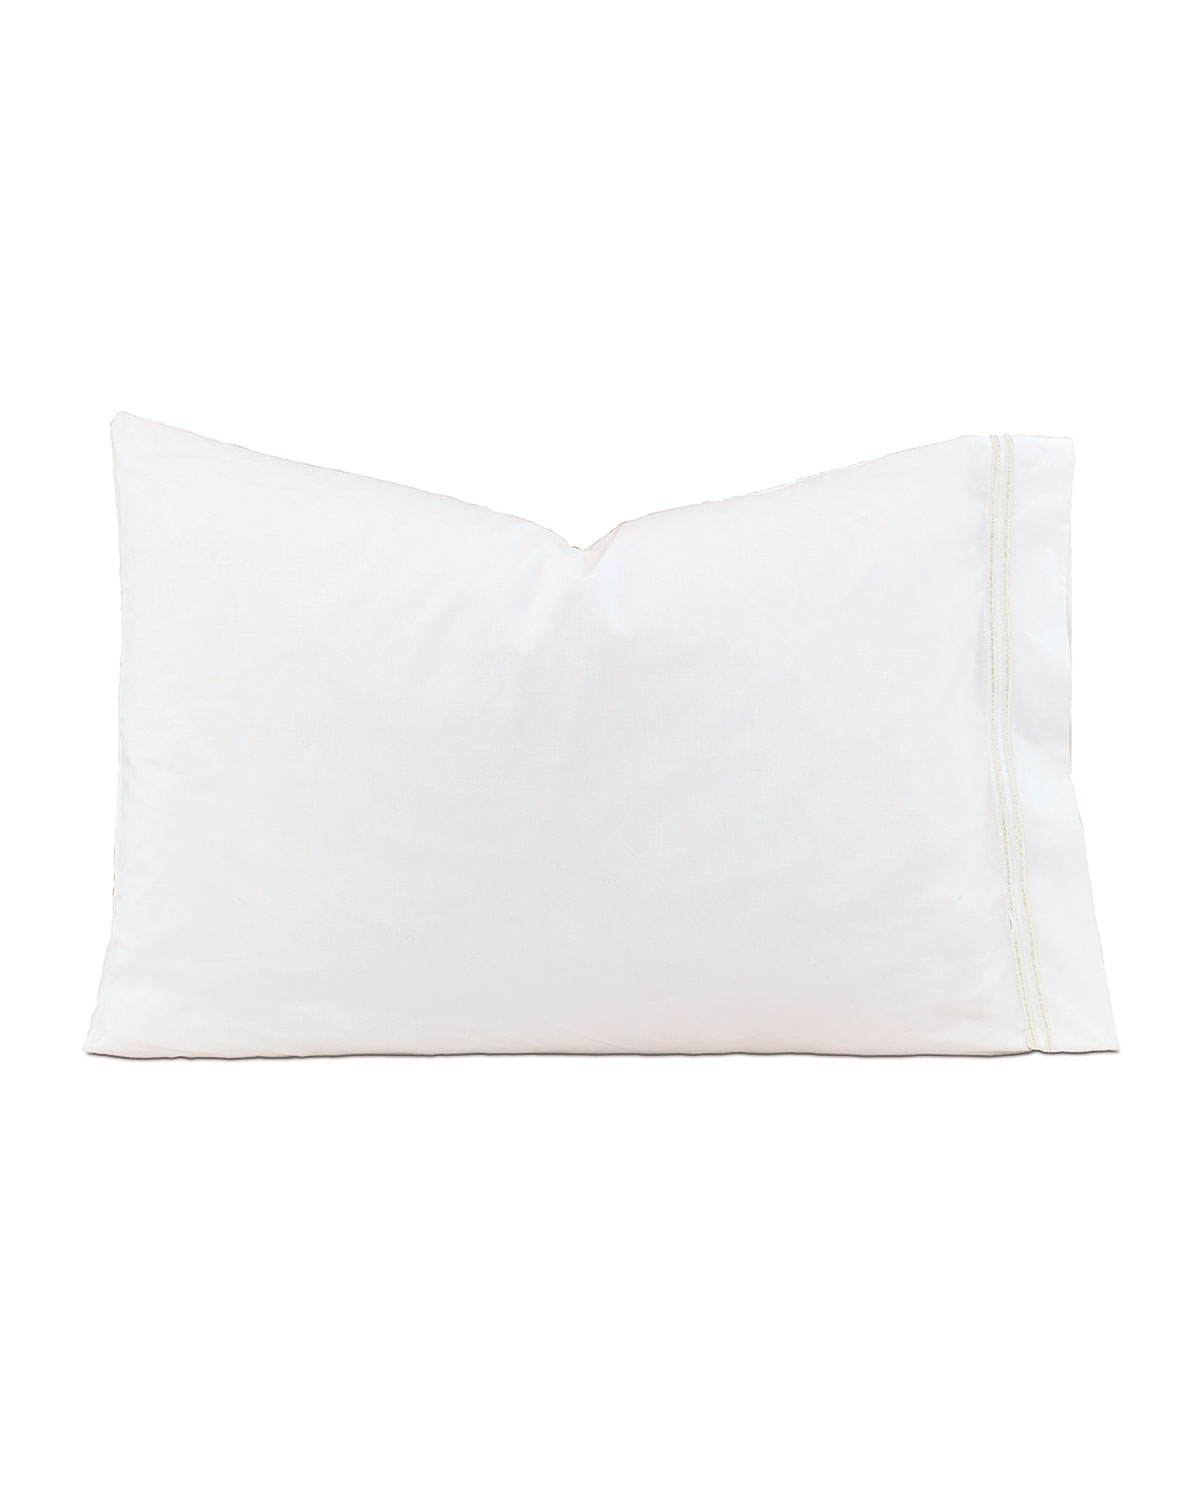 Eastern Accents ENZO KING PILLOWCASE